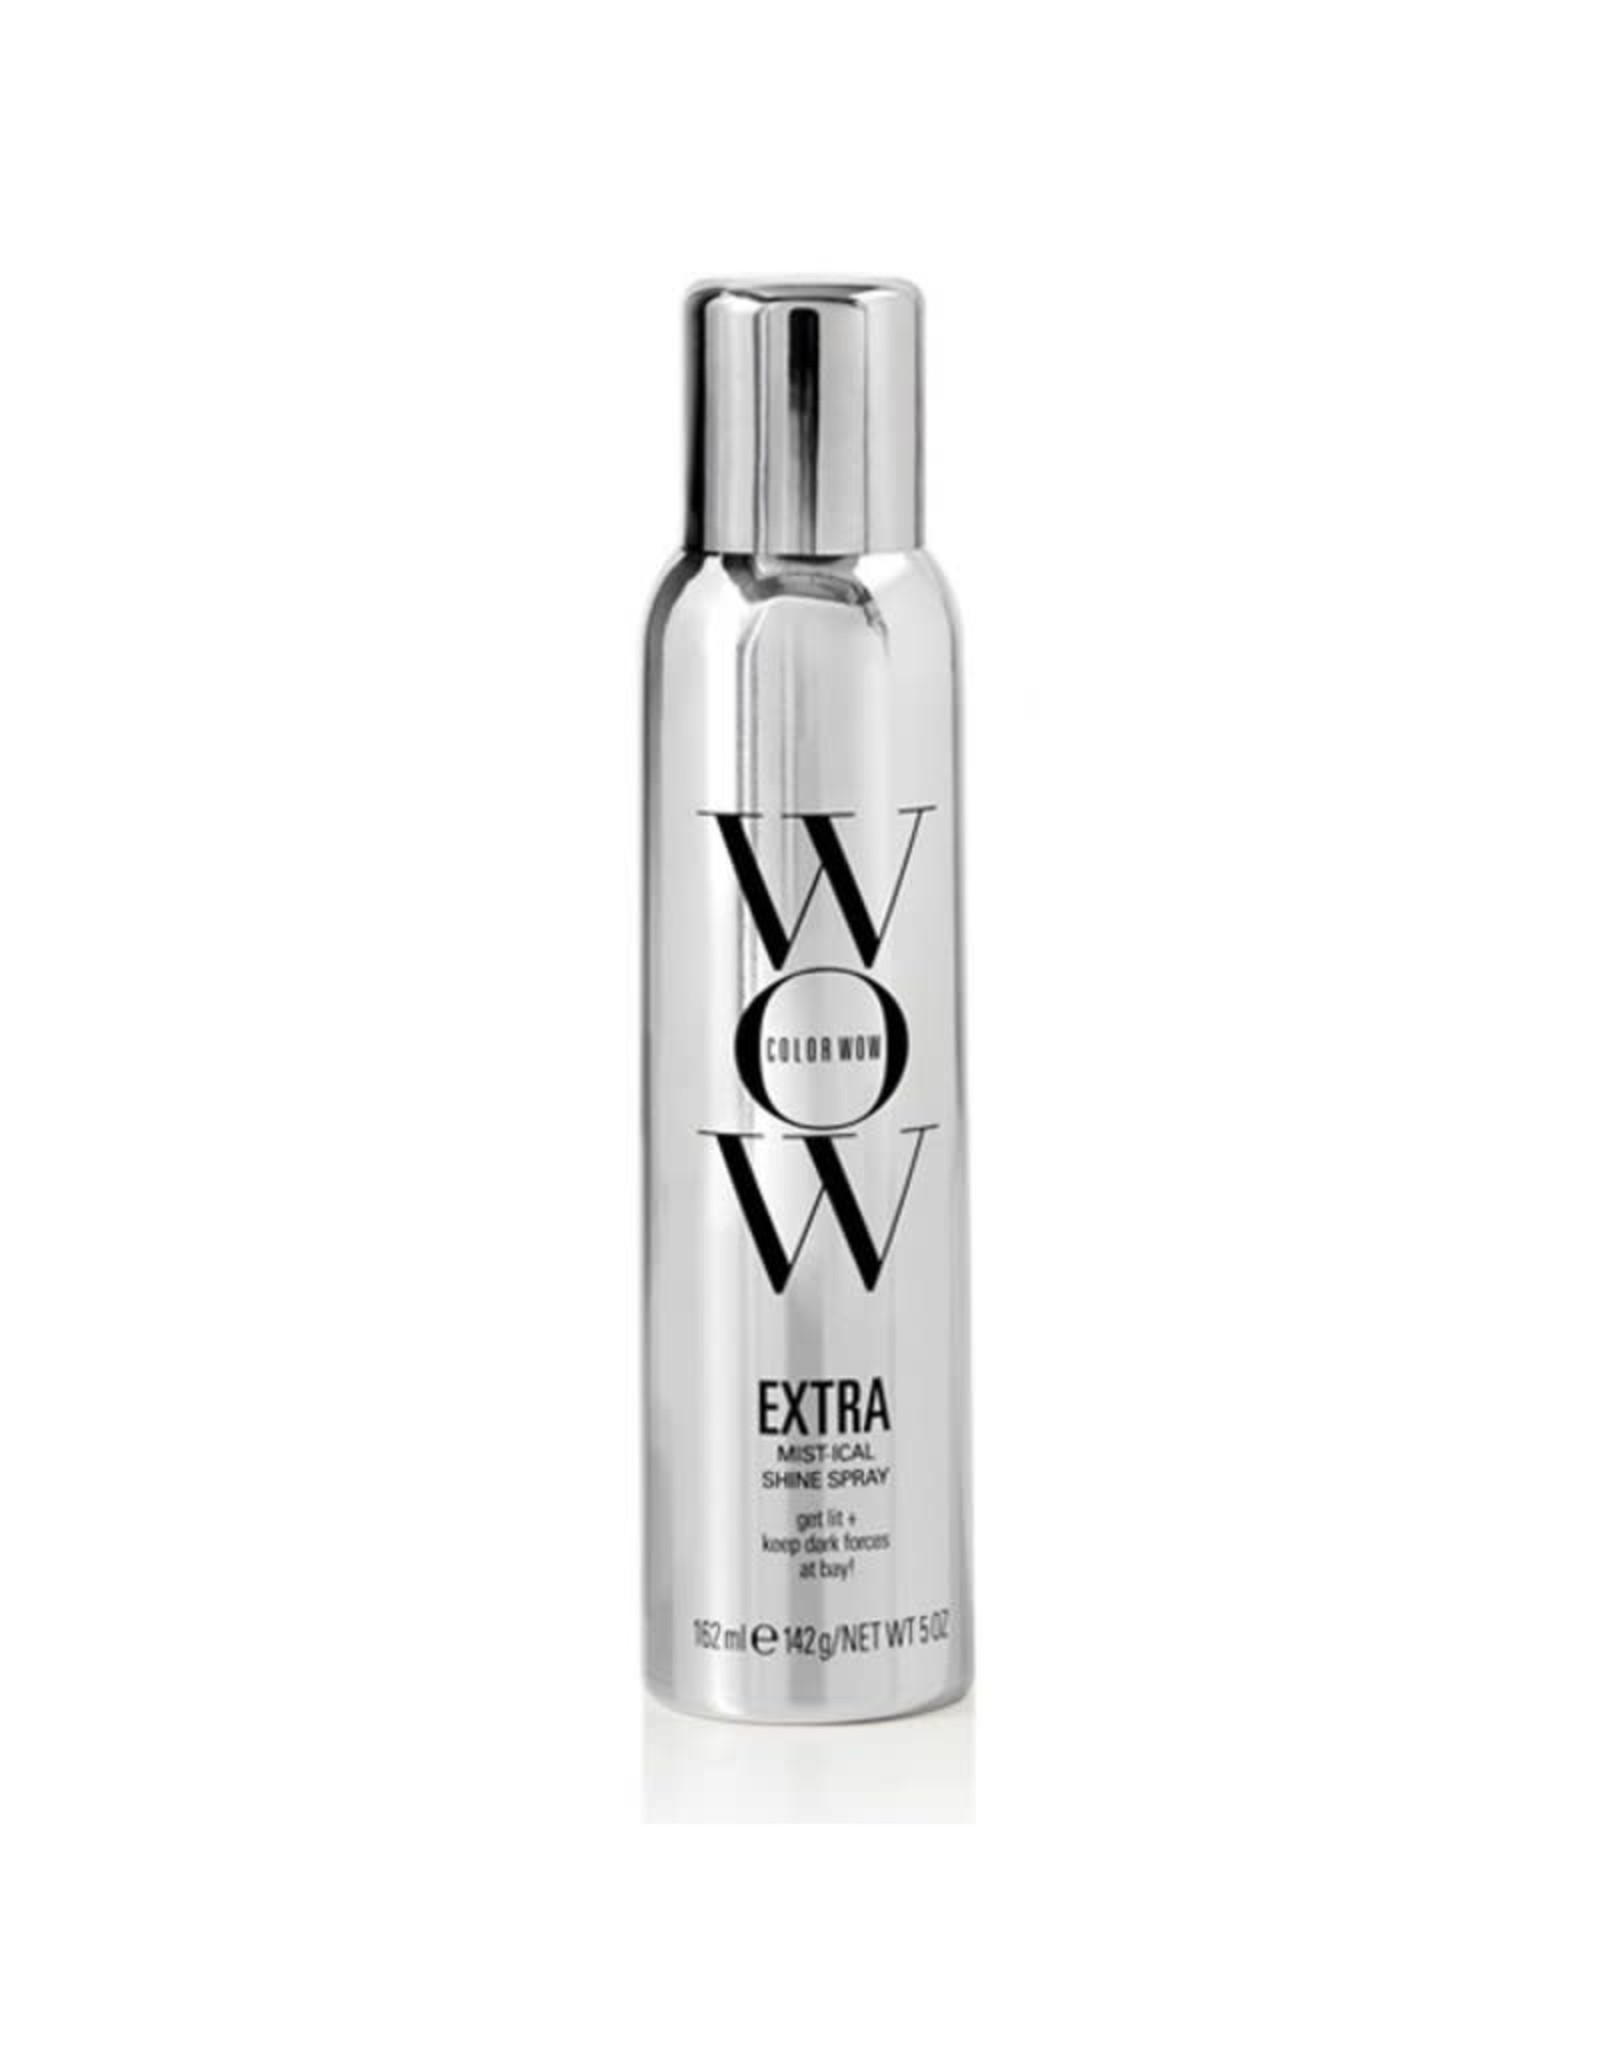 COLOR WOW EXTRA Mist-ical Shine Spray